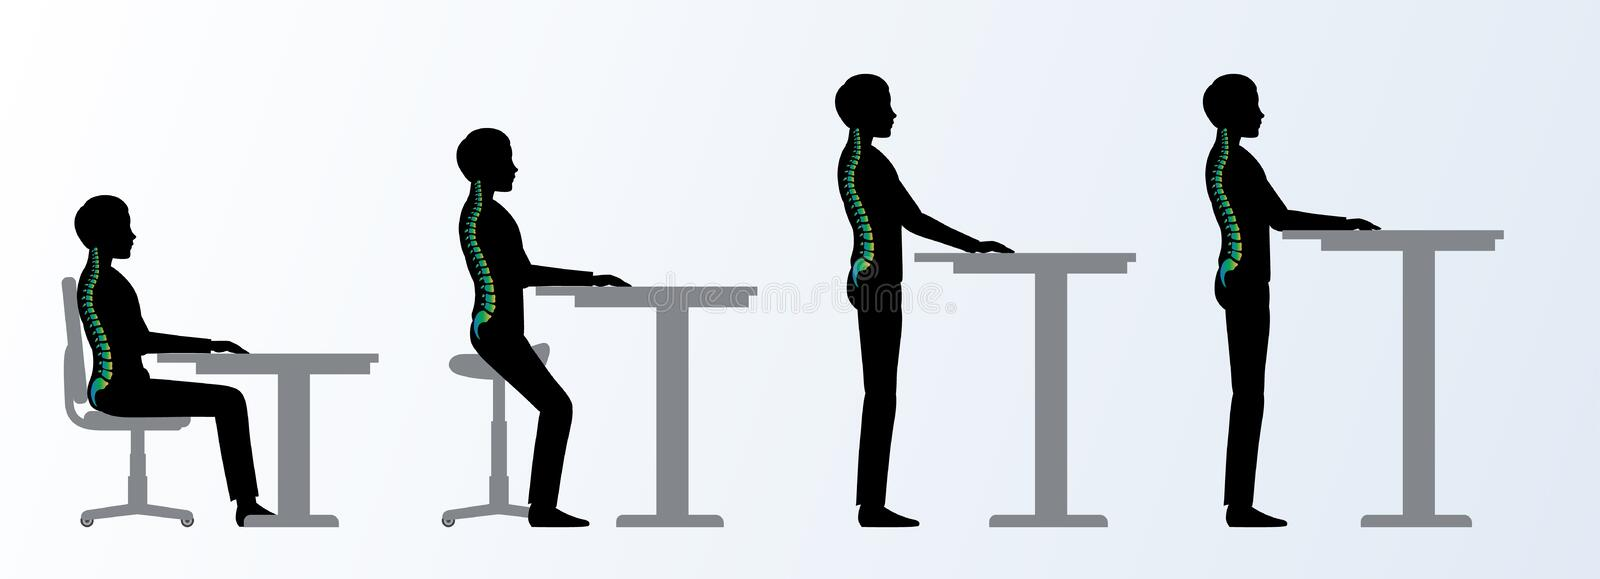 Ergonomic. Height adjustable desk or table poses. Ergonomic. Height adjustable desk or table sitting and standing pose of a man. Saddle chair vector illustration